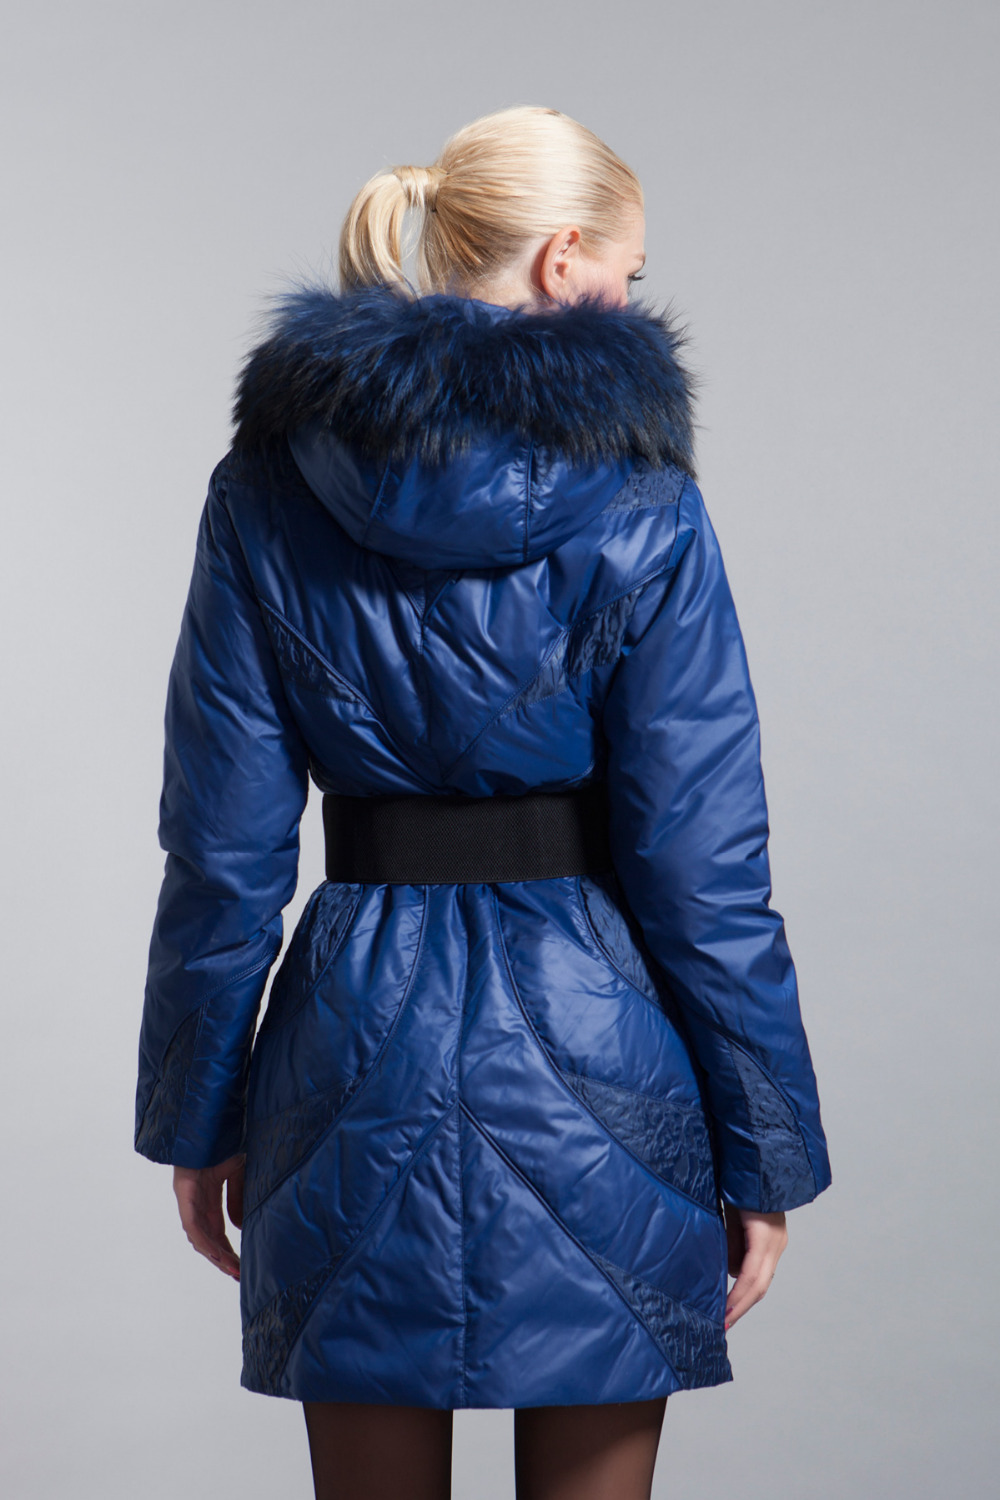 7588d988c59 BASIC EDITIONS Winter Extra Large Fur Collar Down Coat White Duck Feather  Women's Down Jacket ZY12069 Free Shipping-in Down Coats from Women's  Clothing on ...